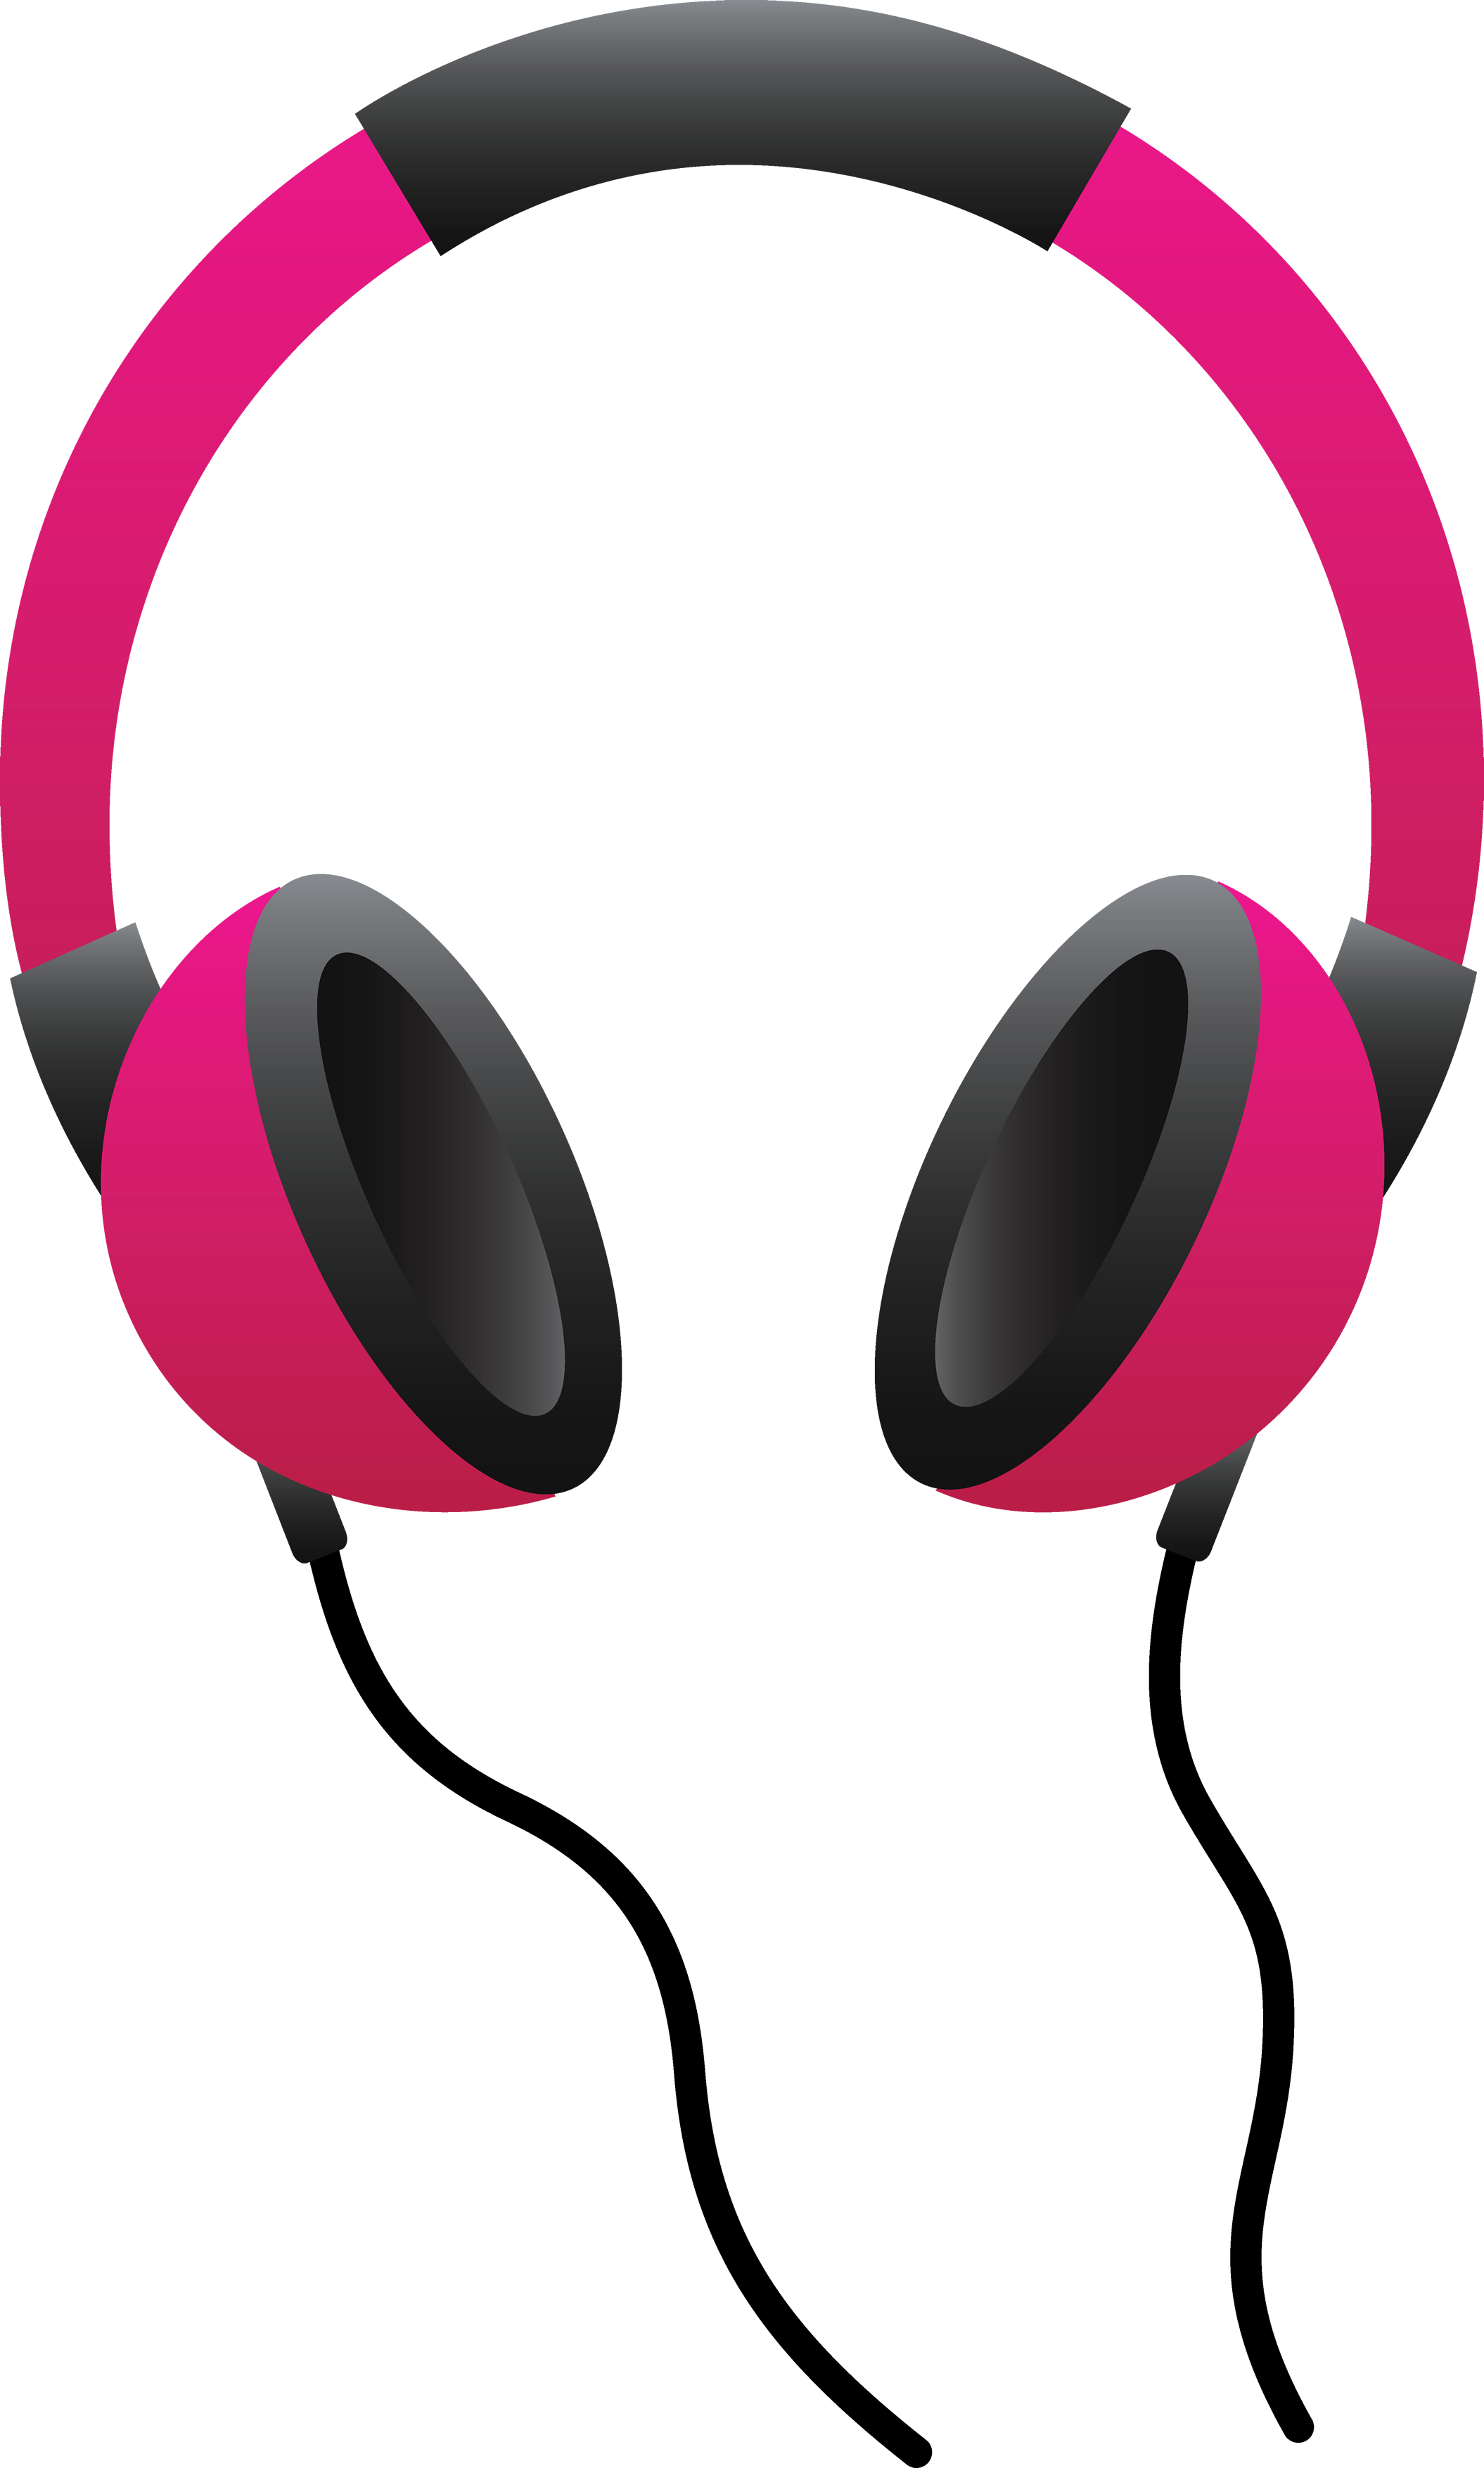 Earbuds clipart computer headphone. Headphones png images free